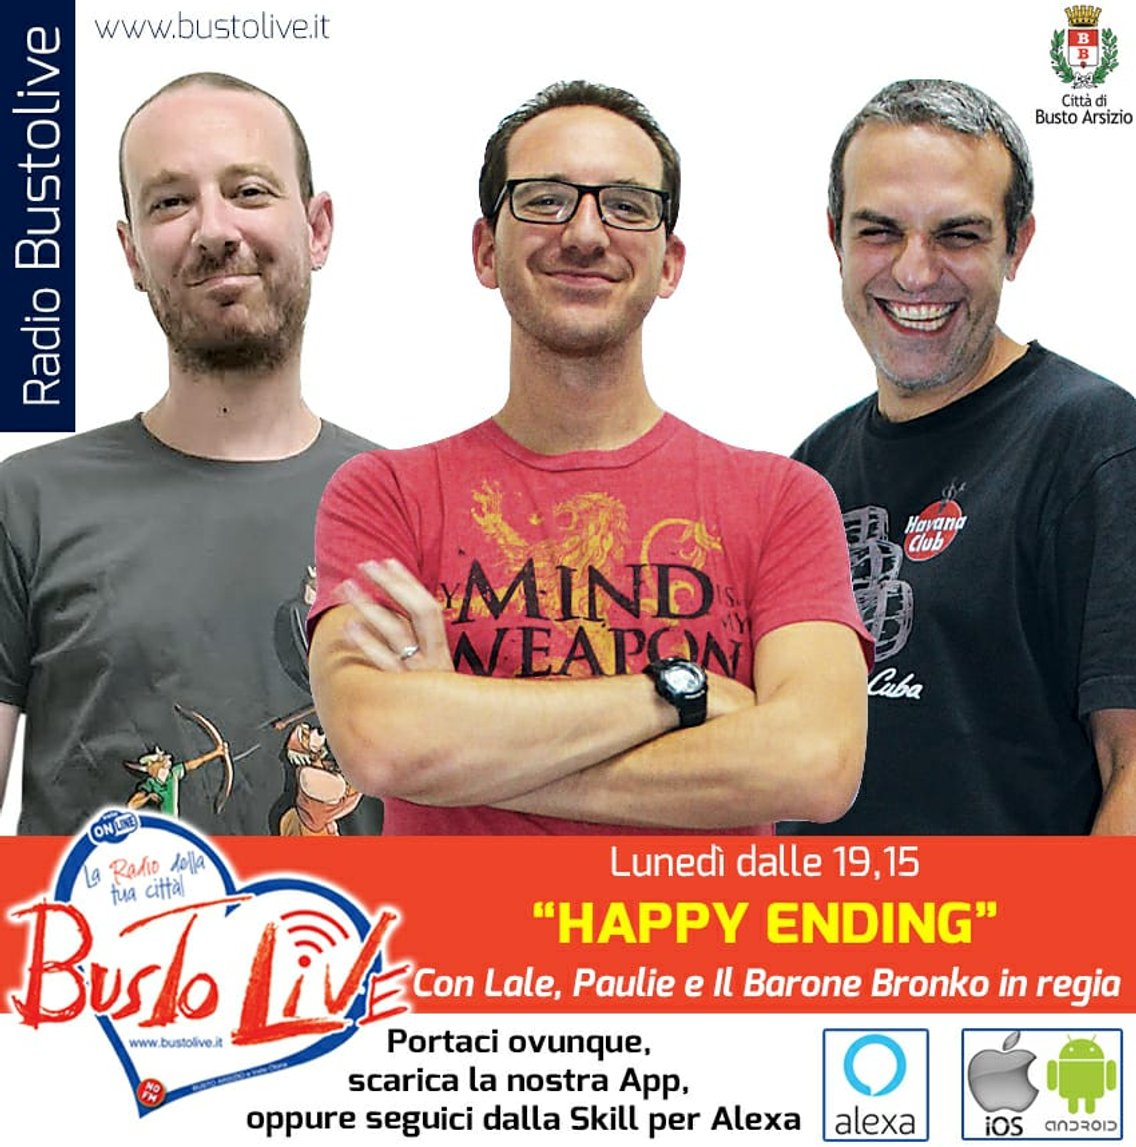 Happy Ending - Radio Busto Live - Cover Image